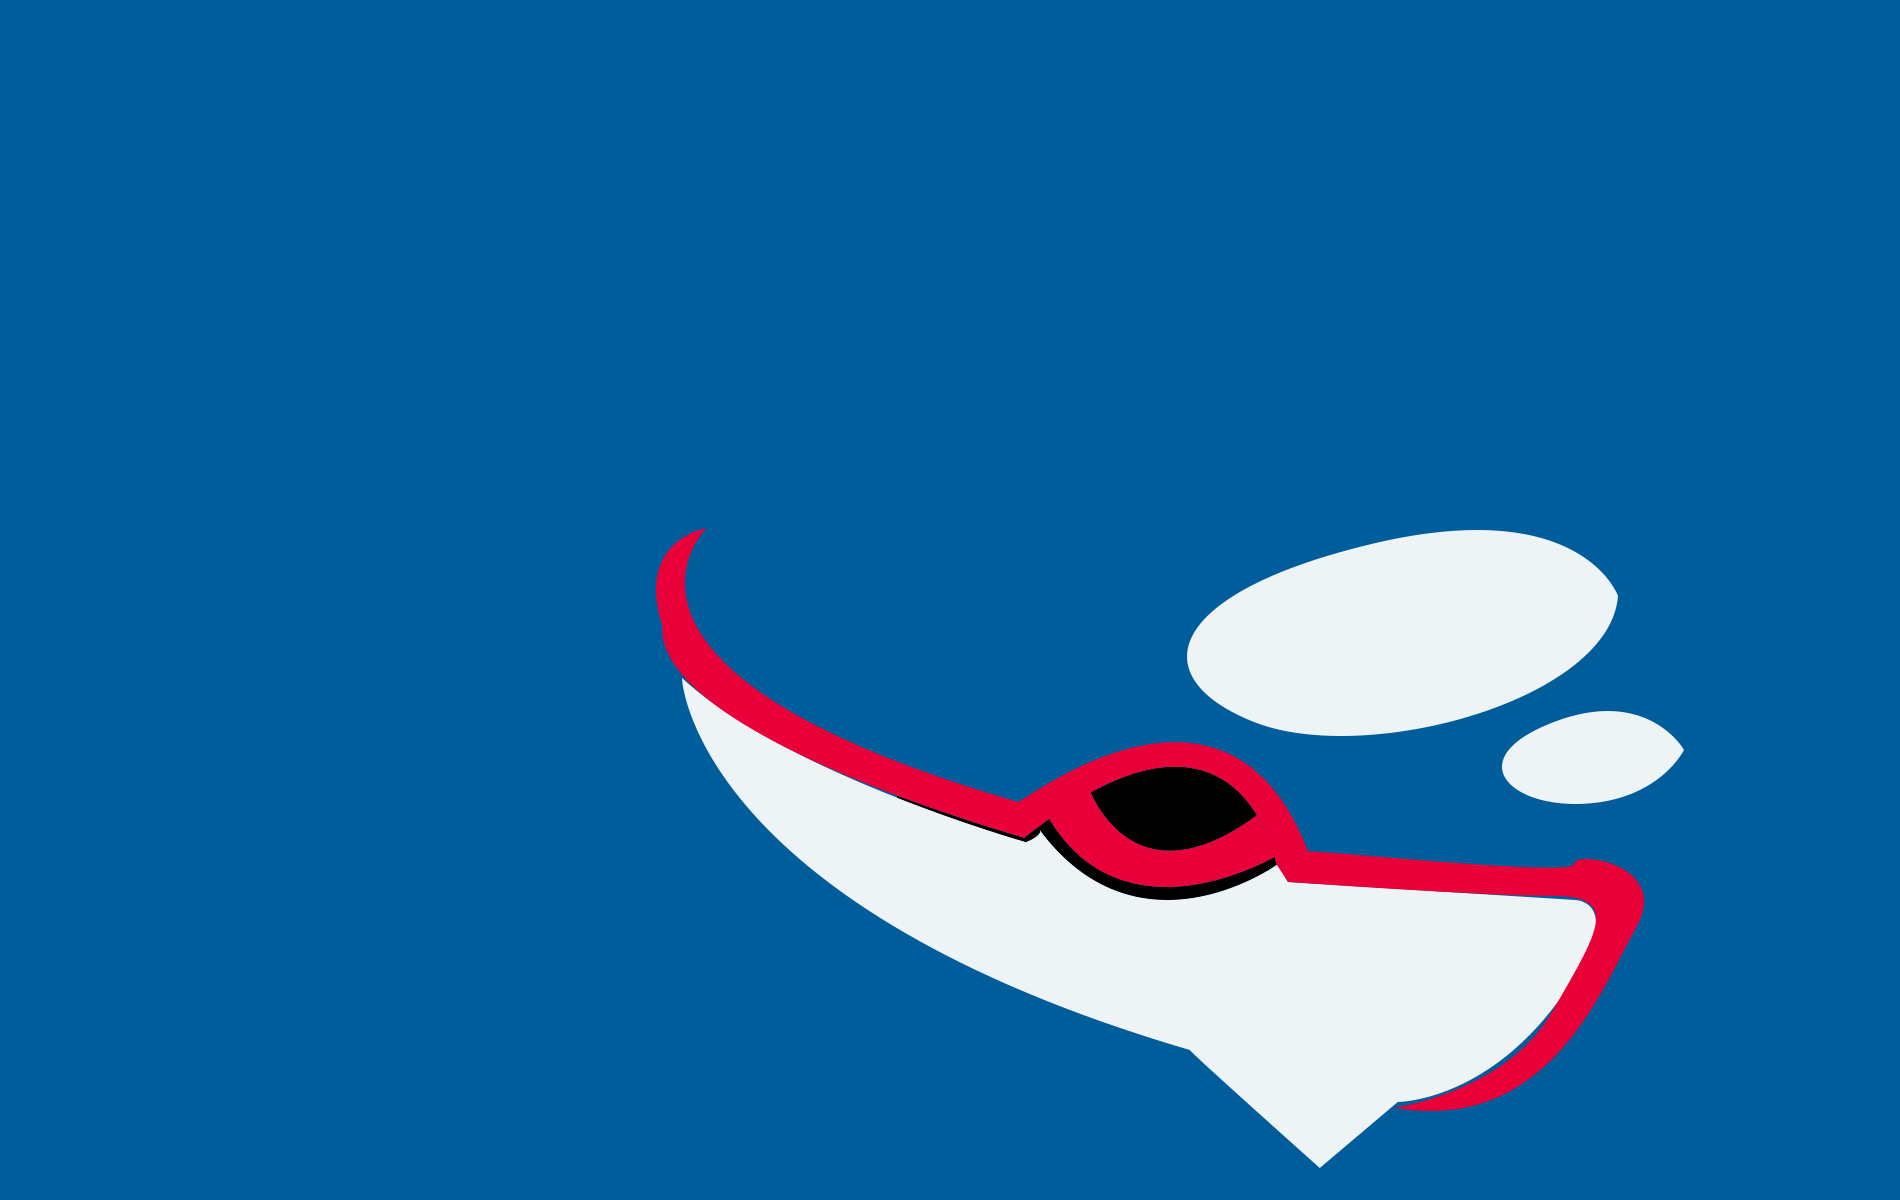 Kyogre by PokeTrainerManro on DeviantArt